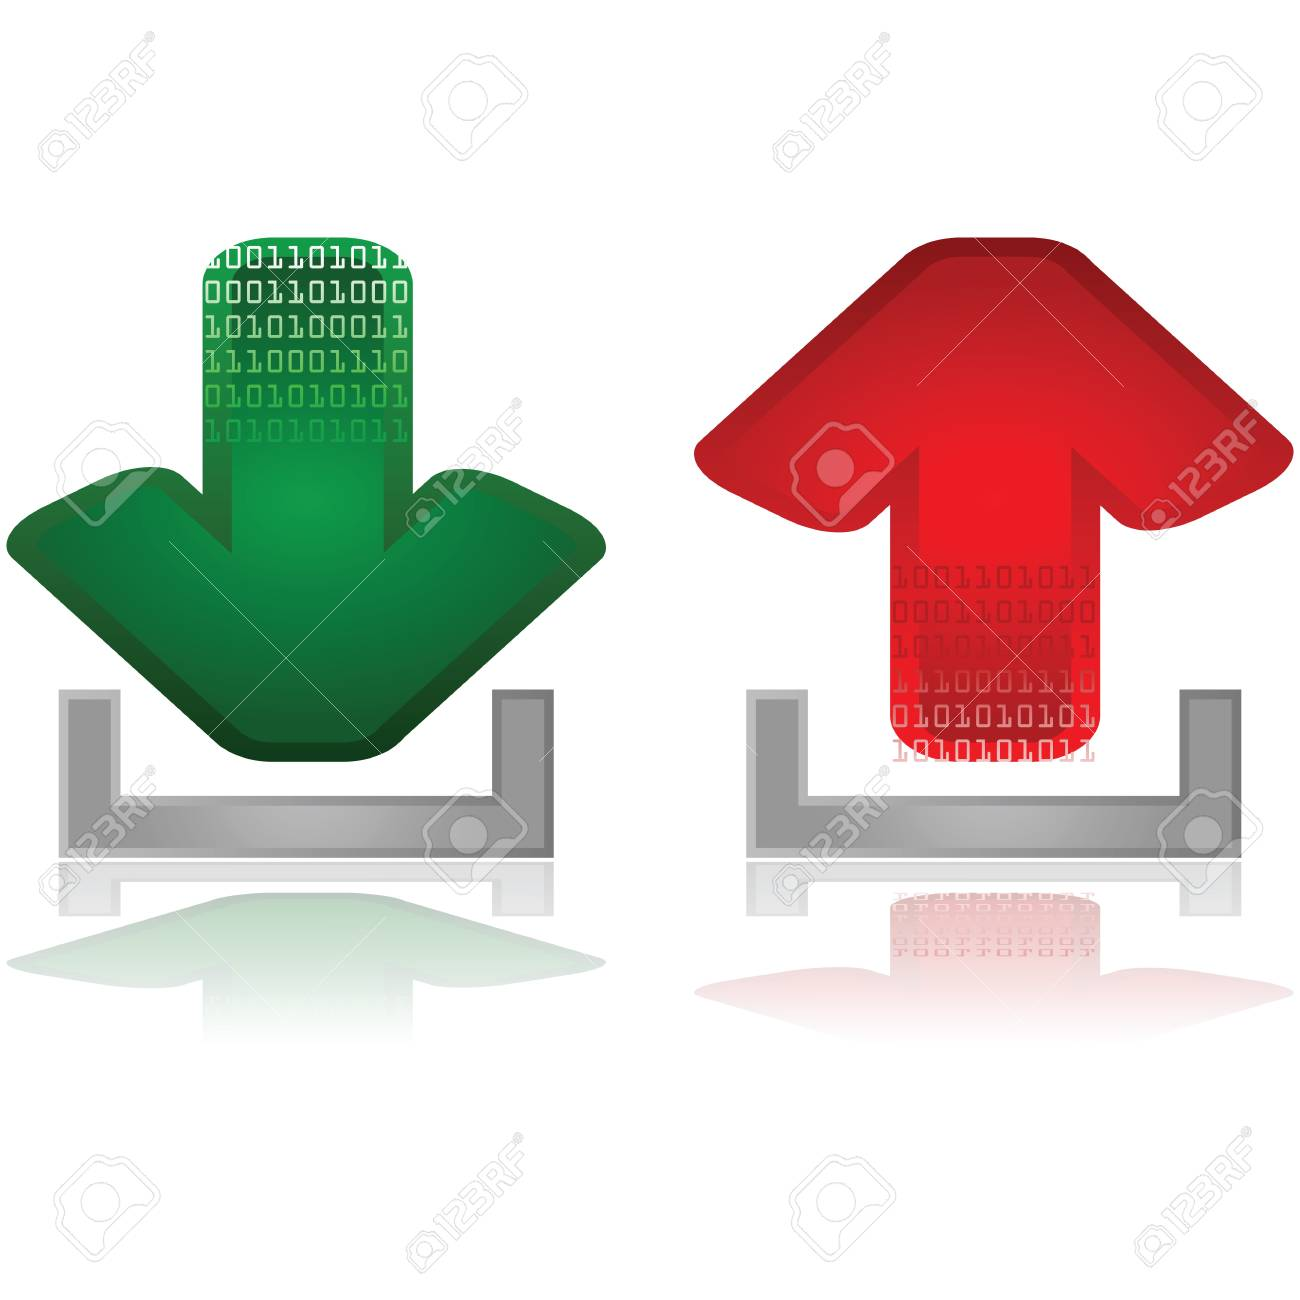 Set with two arrows, one green for downloads and one red for uploads Stock Vector - 17810132